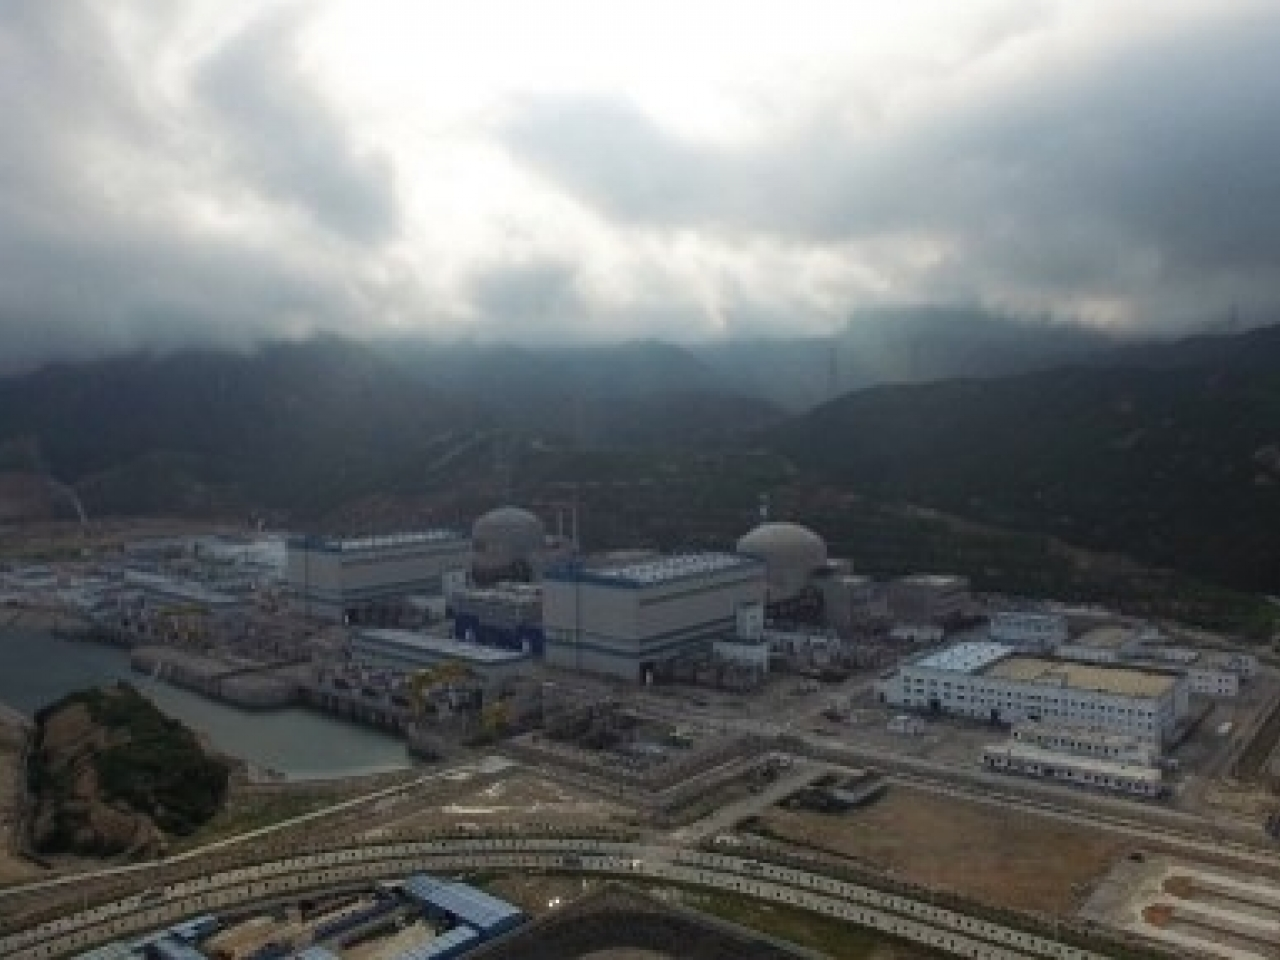 China's environment ministry says the increase in radioactivity is 'within the permitted range of stable operation' for nuclear power plants. File photo: AFP